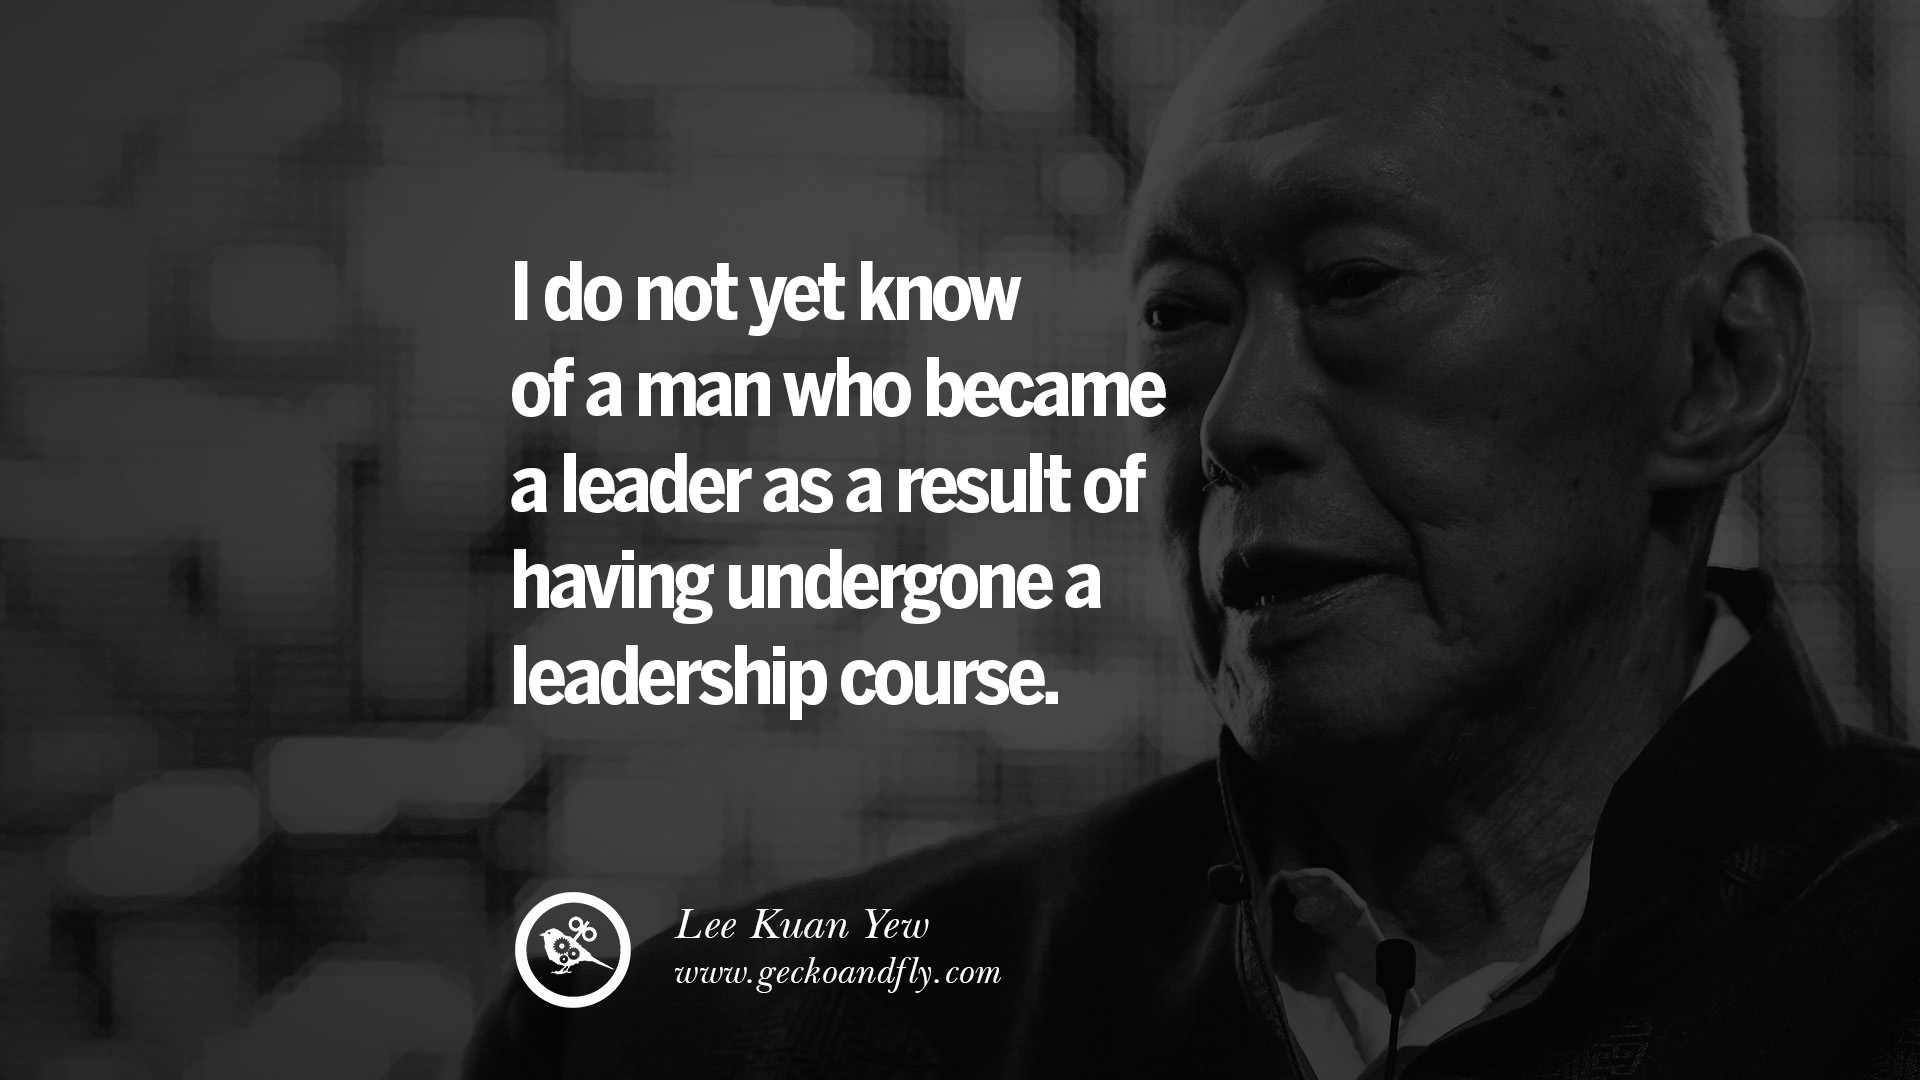 Inspiring Quotes: 25 Inspiring Lee Kuan Yew Quotes On From Third World To First